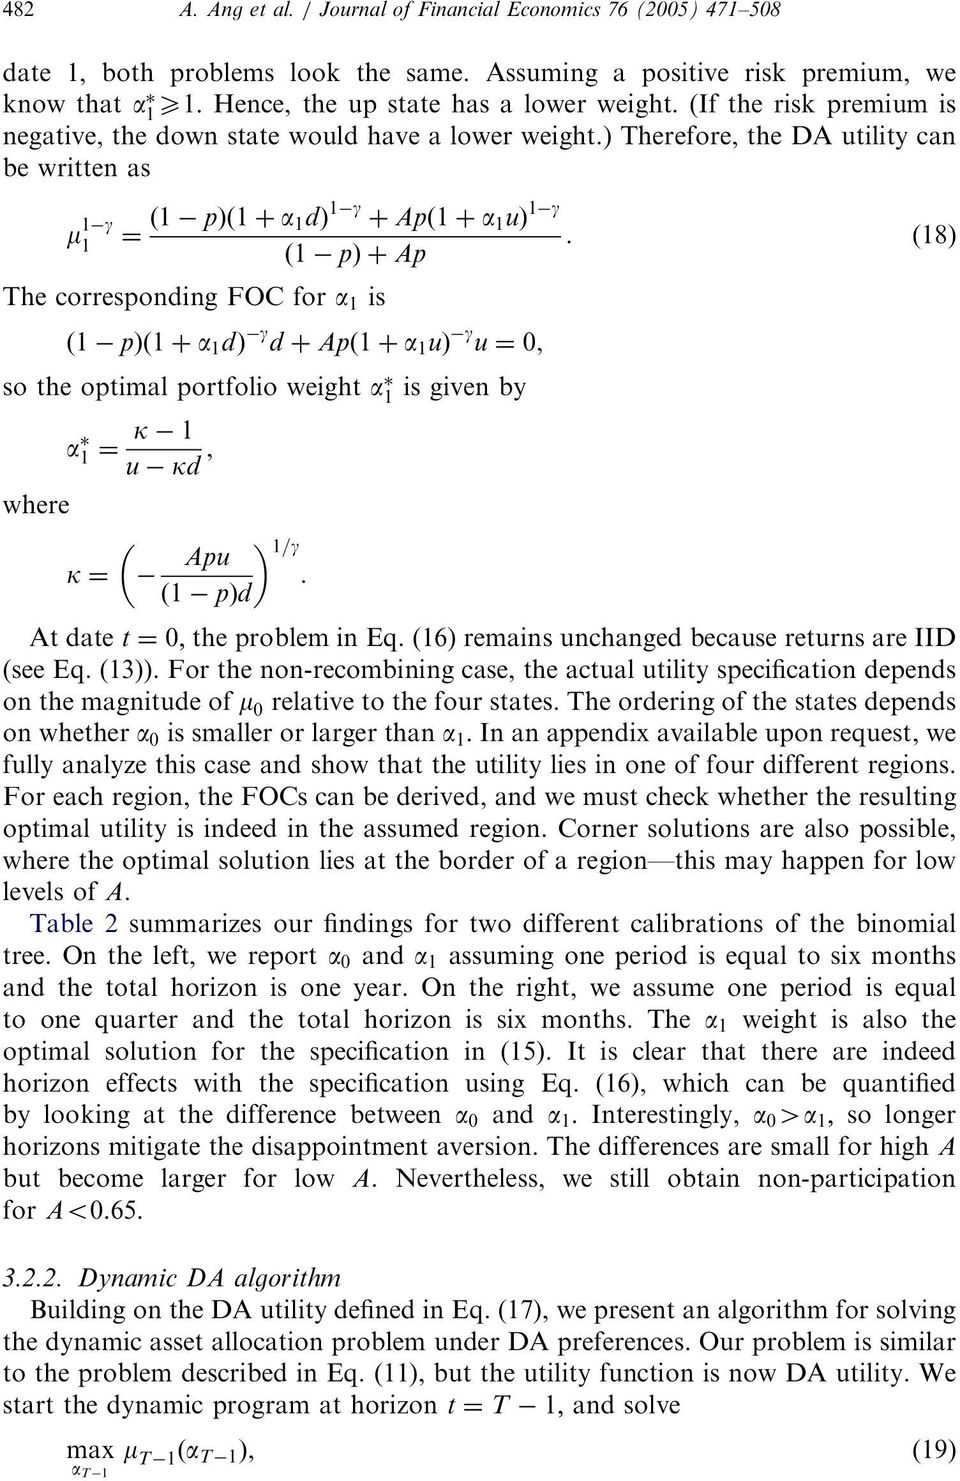 (18) ð1 pþþap The corresponding FOC for a 1 is ð1 pþð1 þ a 1 dþ g d þ Apð1 þ a 1 uþ g u ¼ 0, so the optimal portfolio weight a 1 is given by a 1 ¼ k 1 u kd, where k ¼ Apu 1=g.